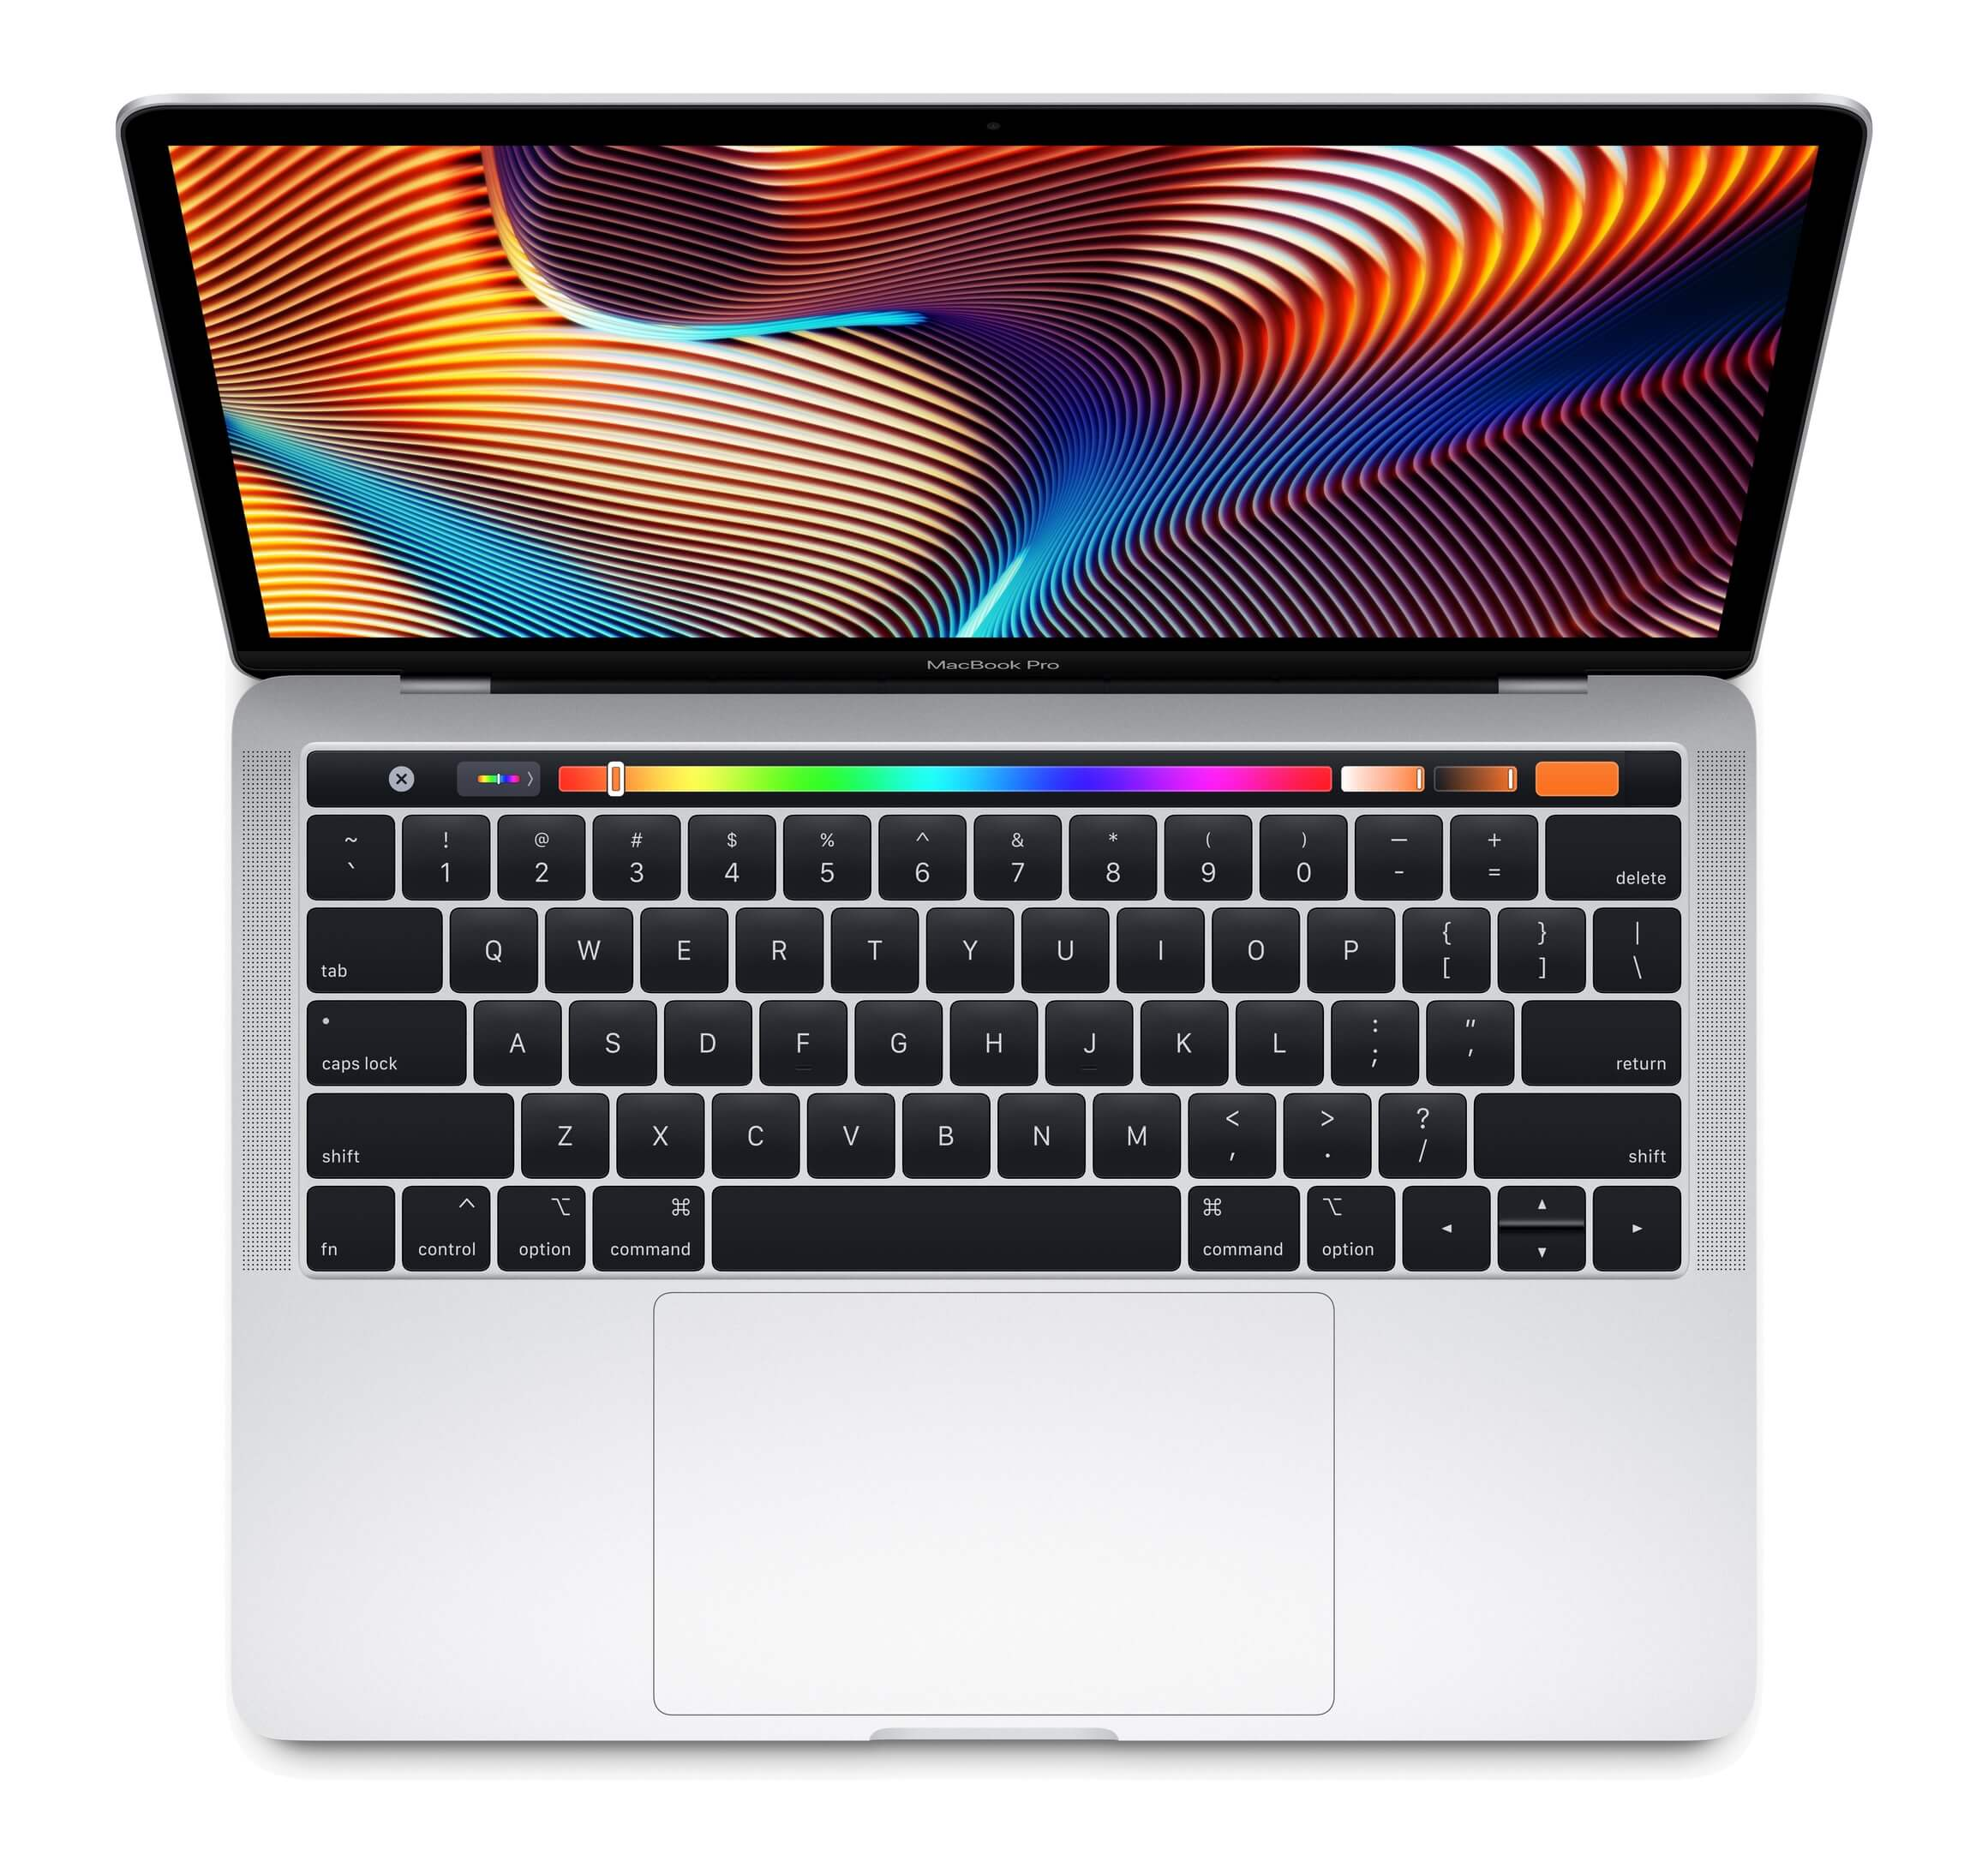 Apple refreshes MacBook Air and MacBook Pro, discontinues 12-inch MacBook